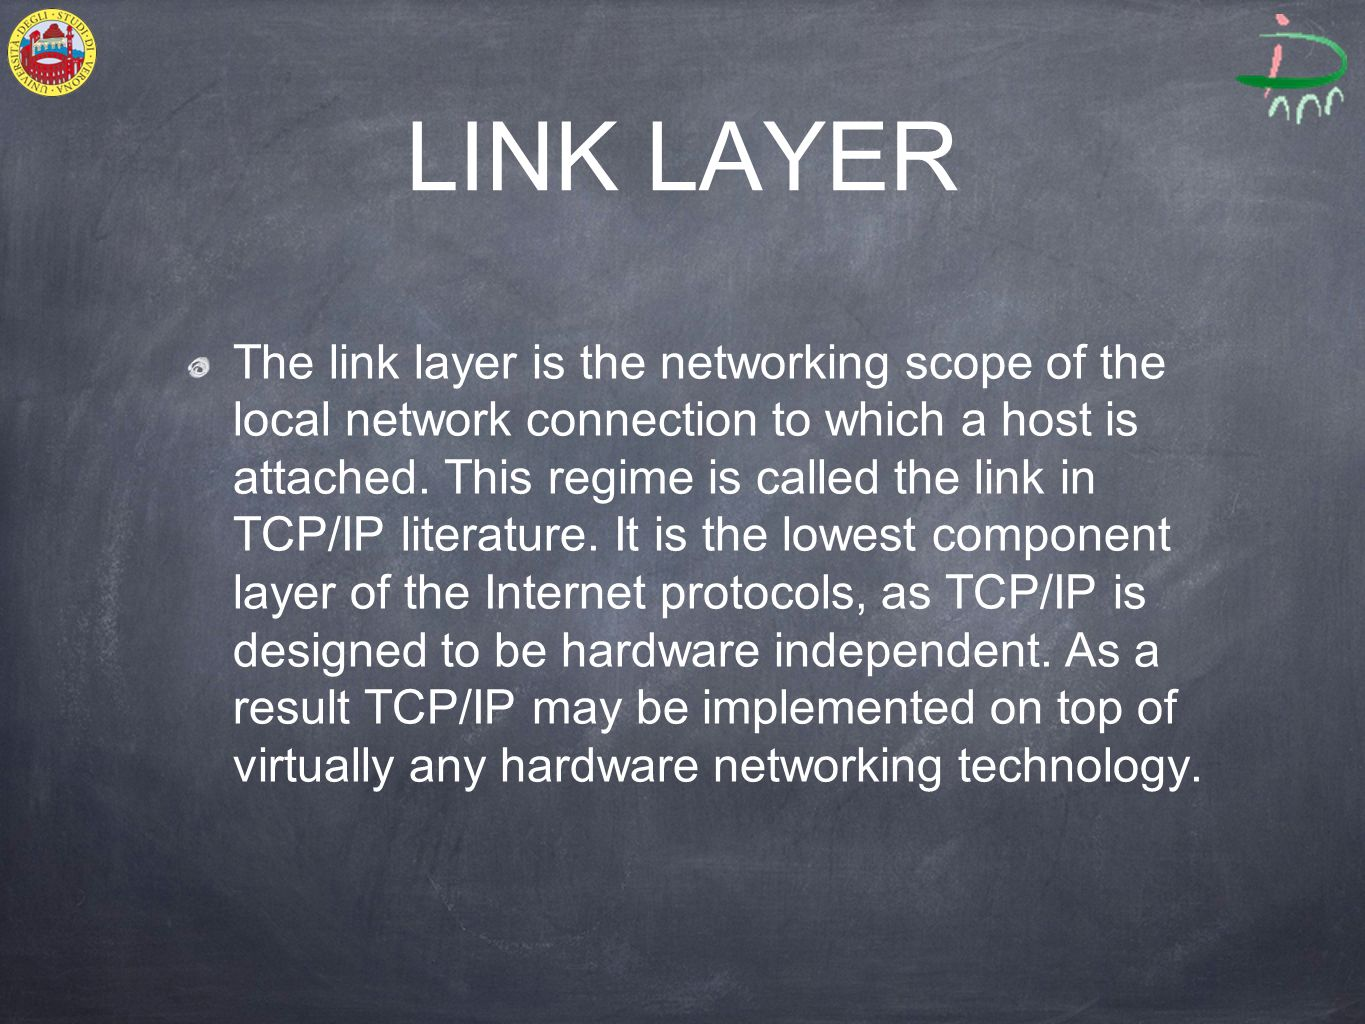 LINK LAYER The link layer is the networking scope of the local network connection to which a host is attached. This regime is called the link in TCP/I